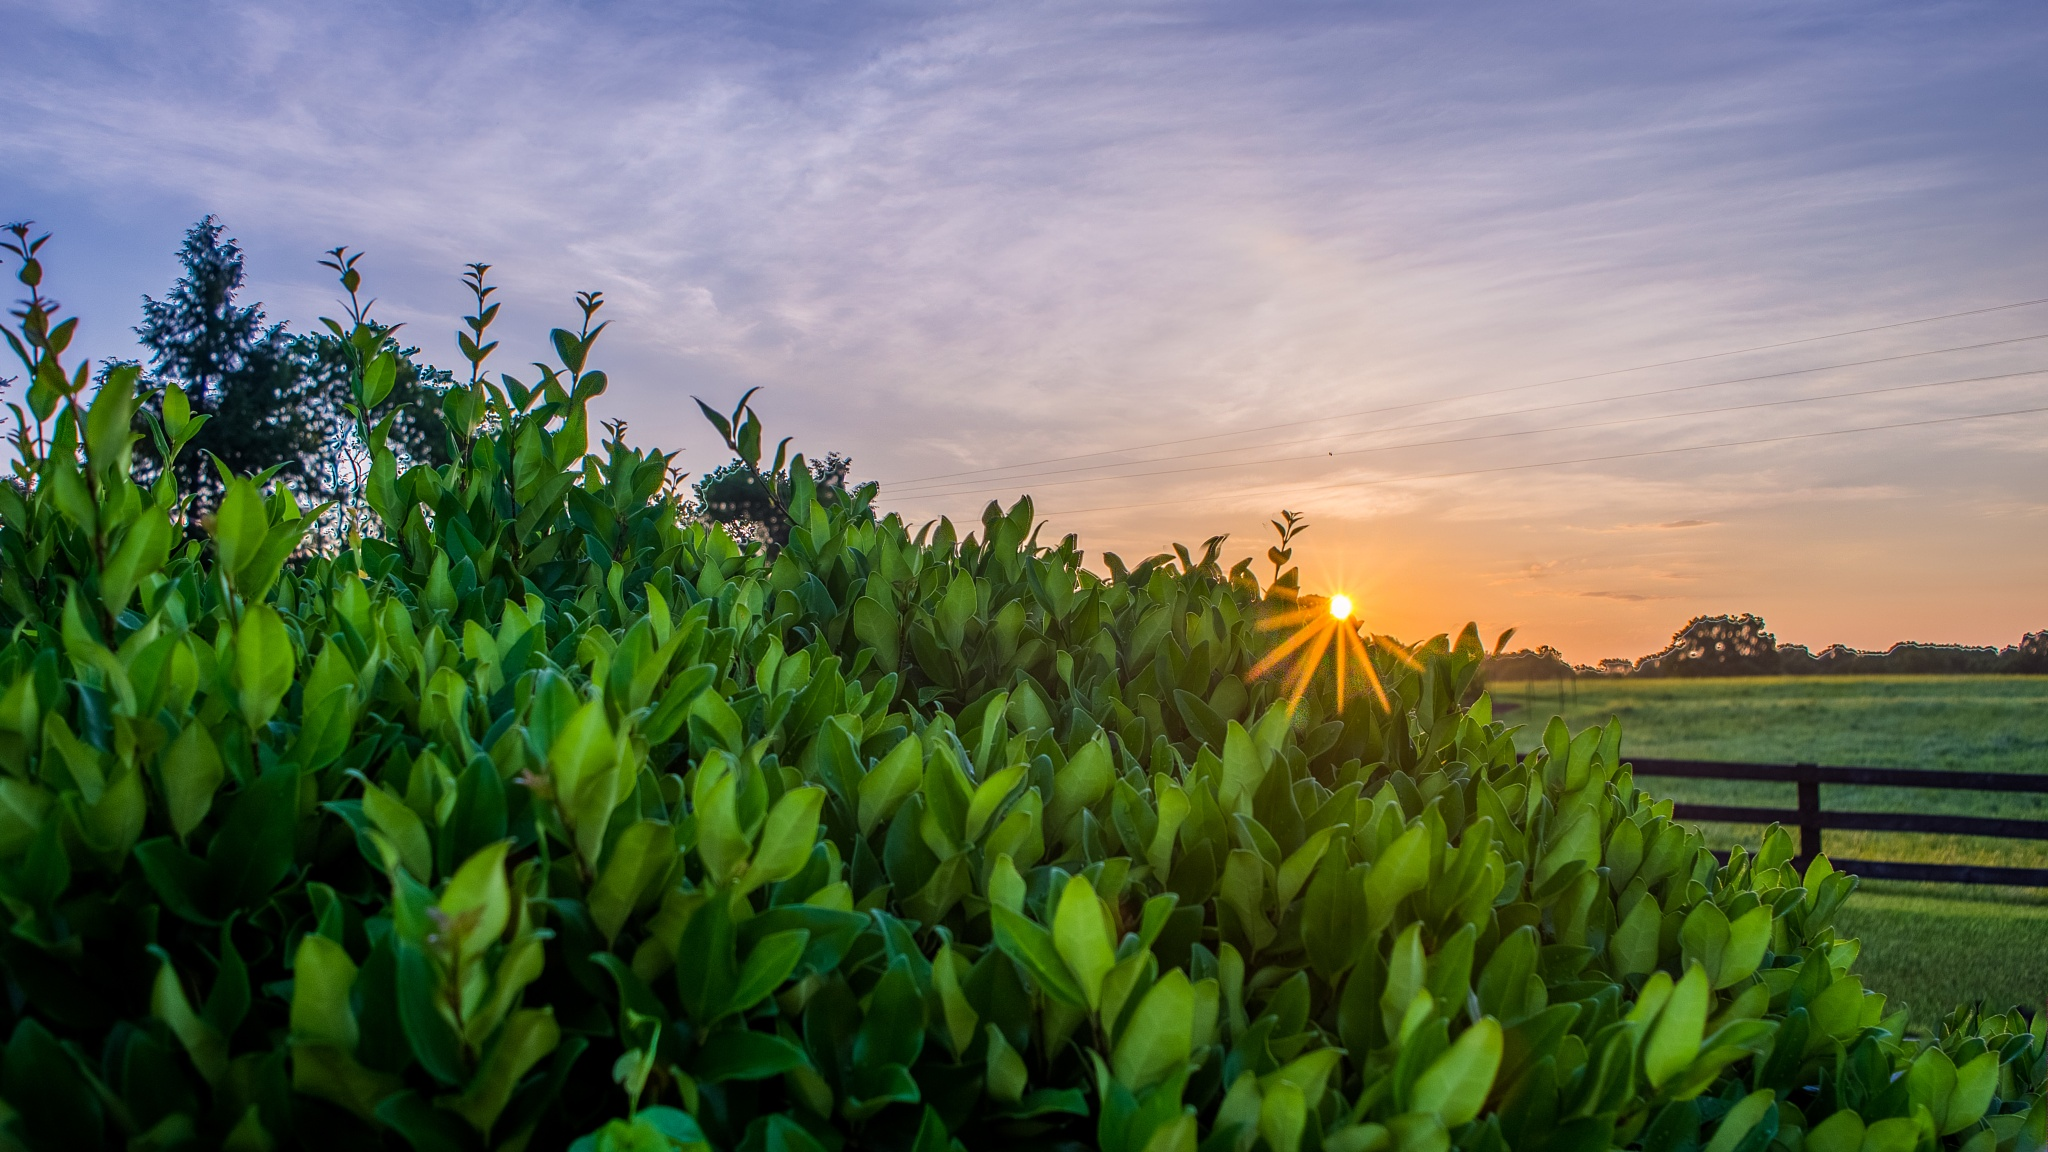 Another Beautiful Sunrise by Jamie Critzer